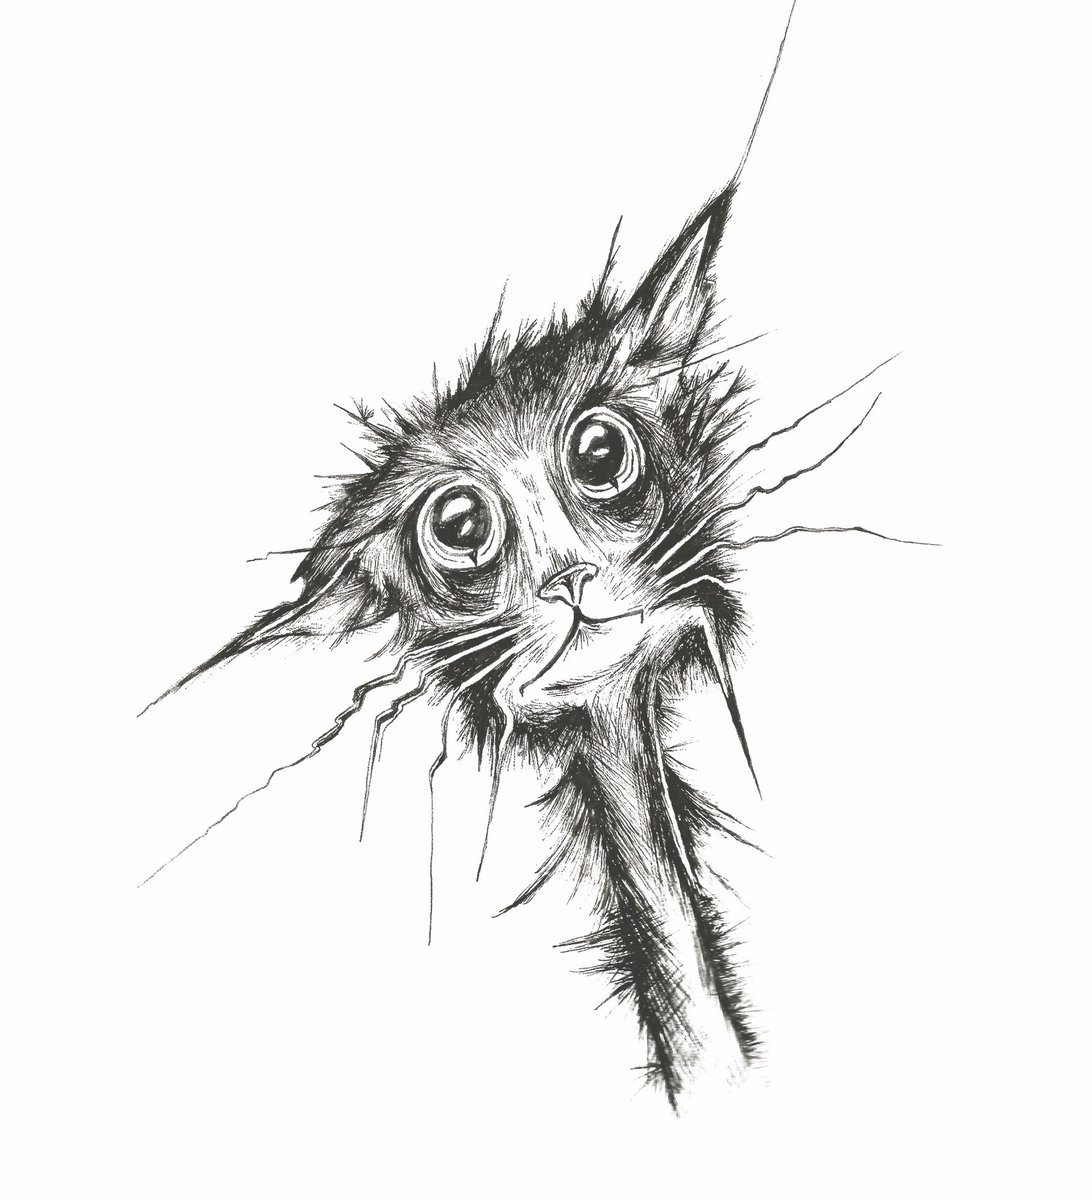 Ever have a day where you feel like this? #anxiety #stress   Get inspired! Follow my hand drawn pen and ink illustrations:   #cat #illustrationartists #illustration #CatsOnTwitter #artist #retweet #WednesdayThoughts #ink @sakuraofamerica @dribbble